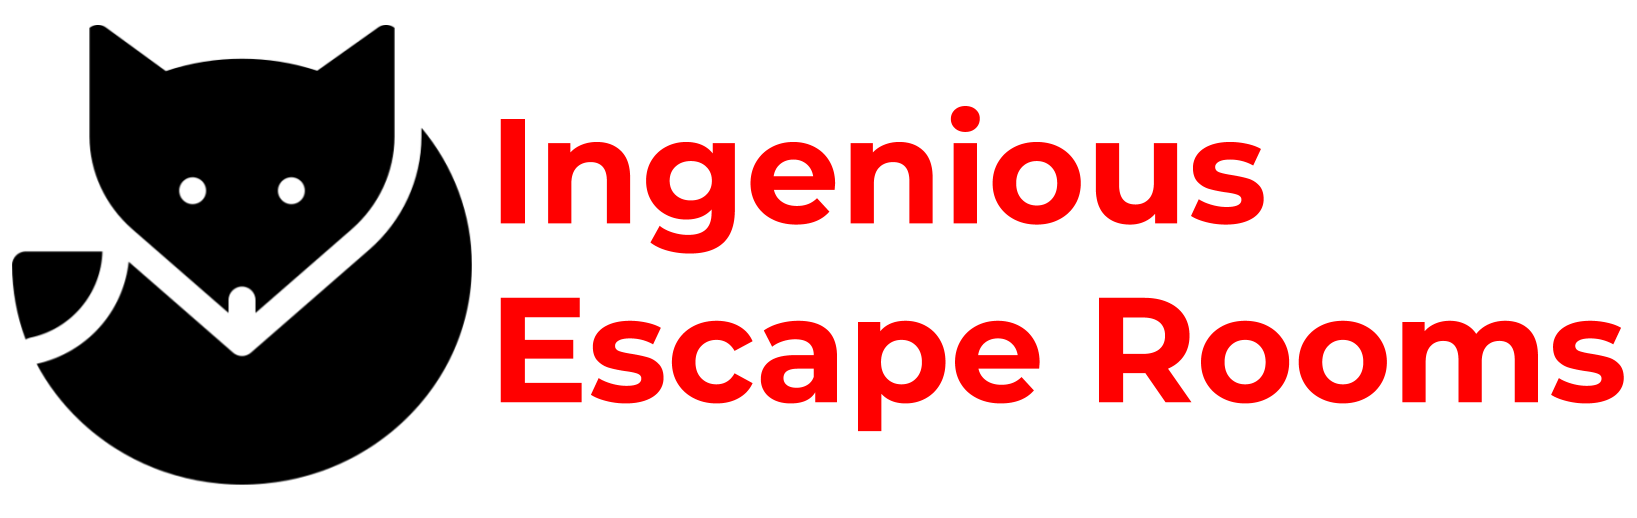 Ingenious Escape Rooms |   c700x420